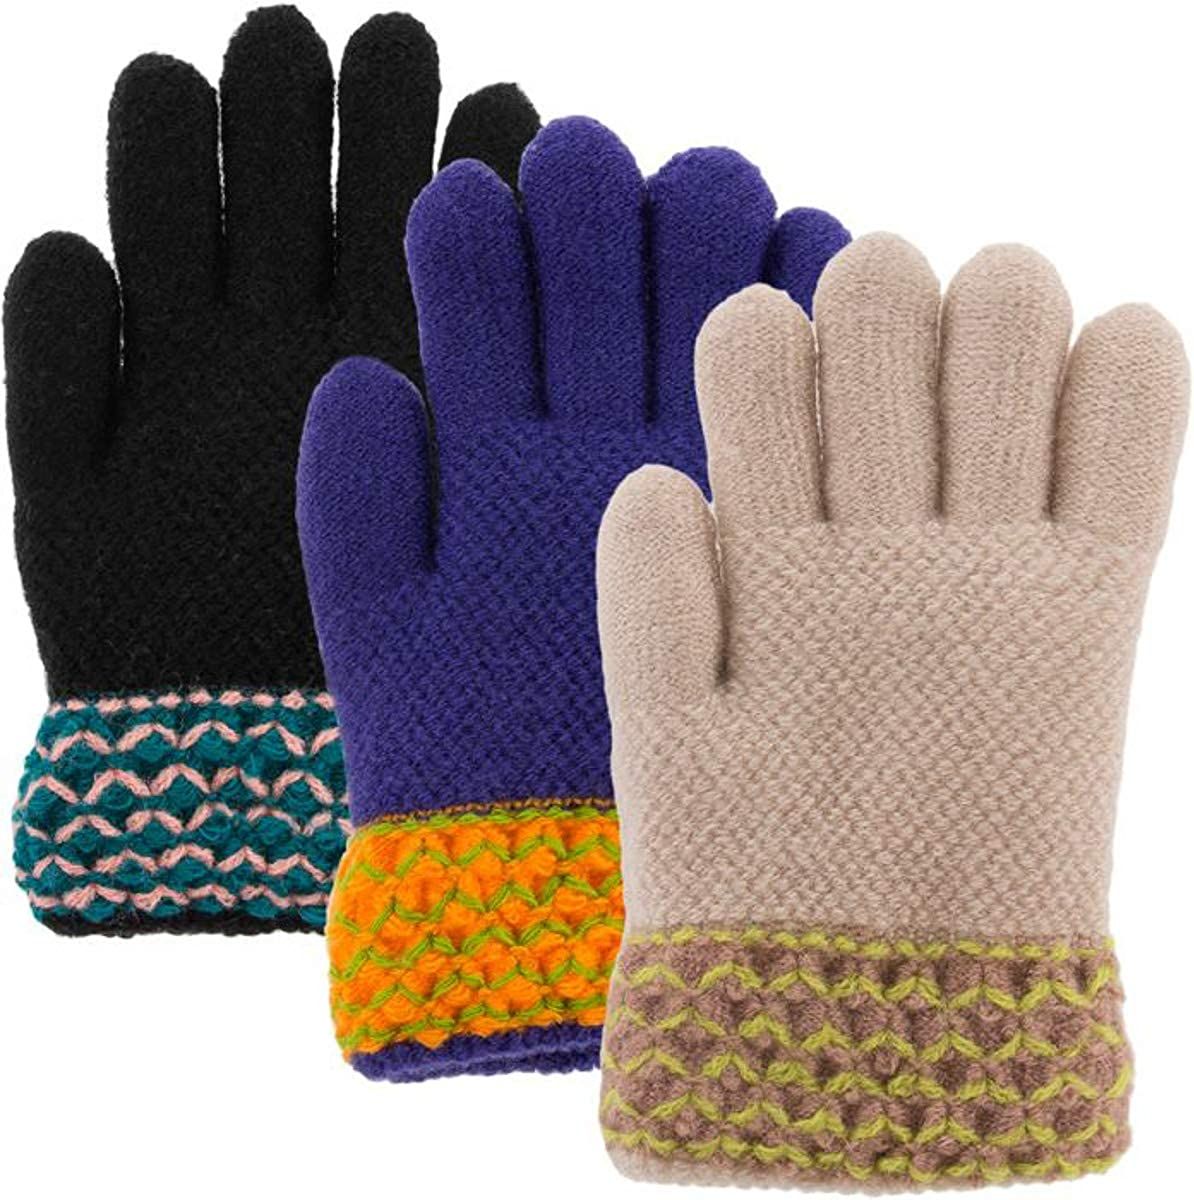 Classic Fashion 3 Pairs Ranking TOP2 Winter Girls Ranking TOP2 Acrylic Gloves Kids For